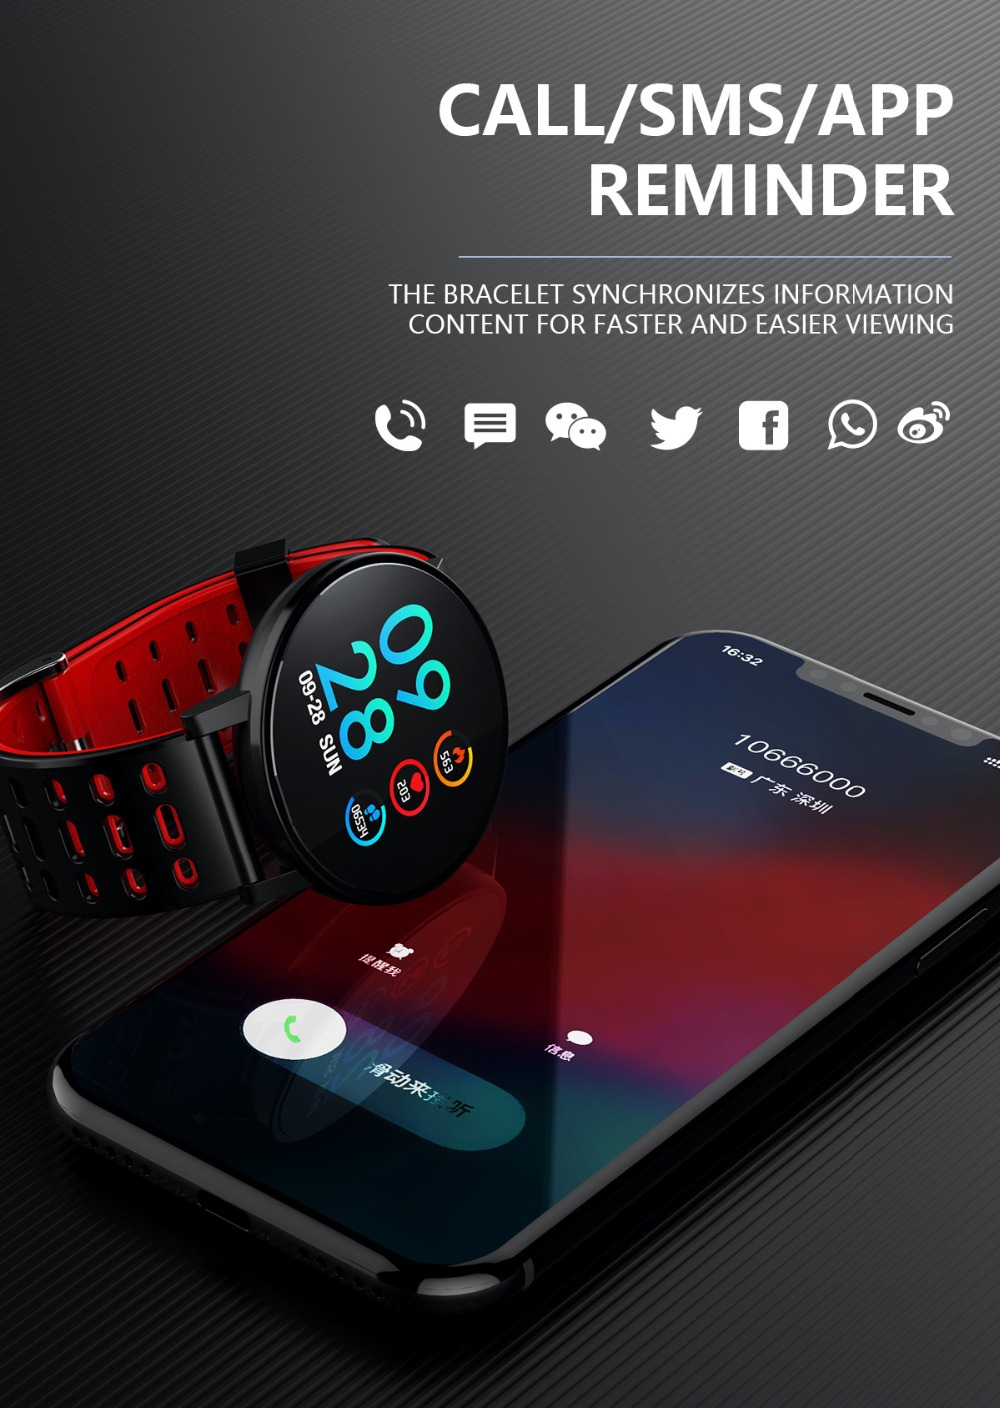 Q9 Smartwatch IP67 Waterproof Wearable Device Bluetooth Pedometer Heart Rate Monitor Color Display Smart Watch For AndroidIOS (10)